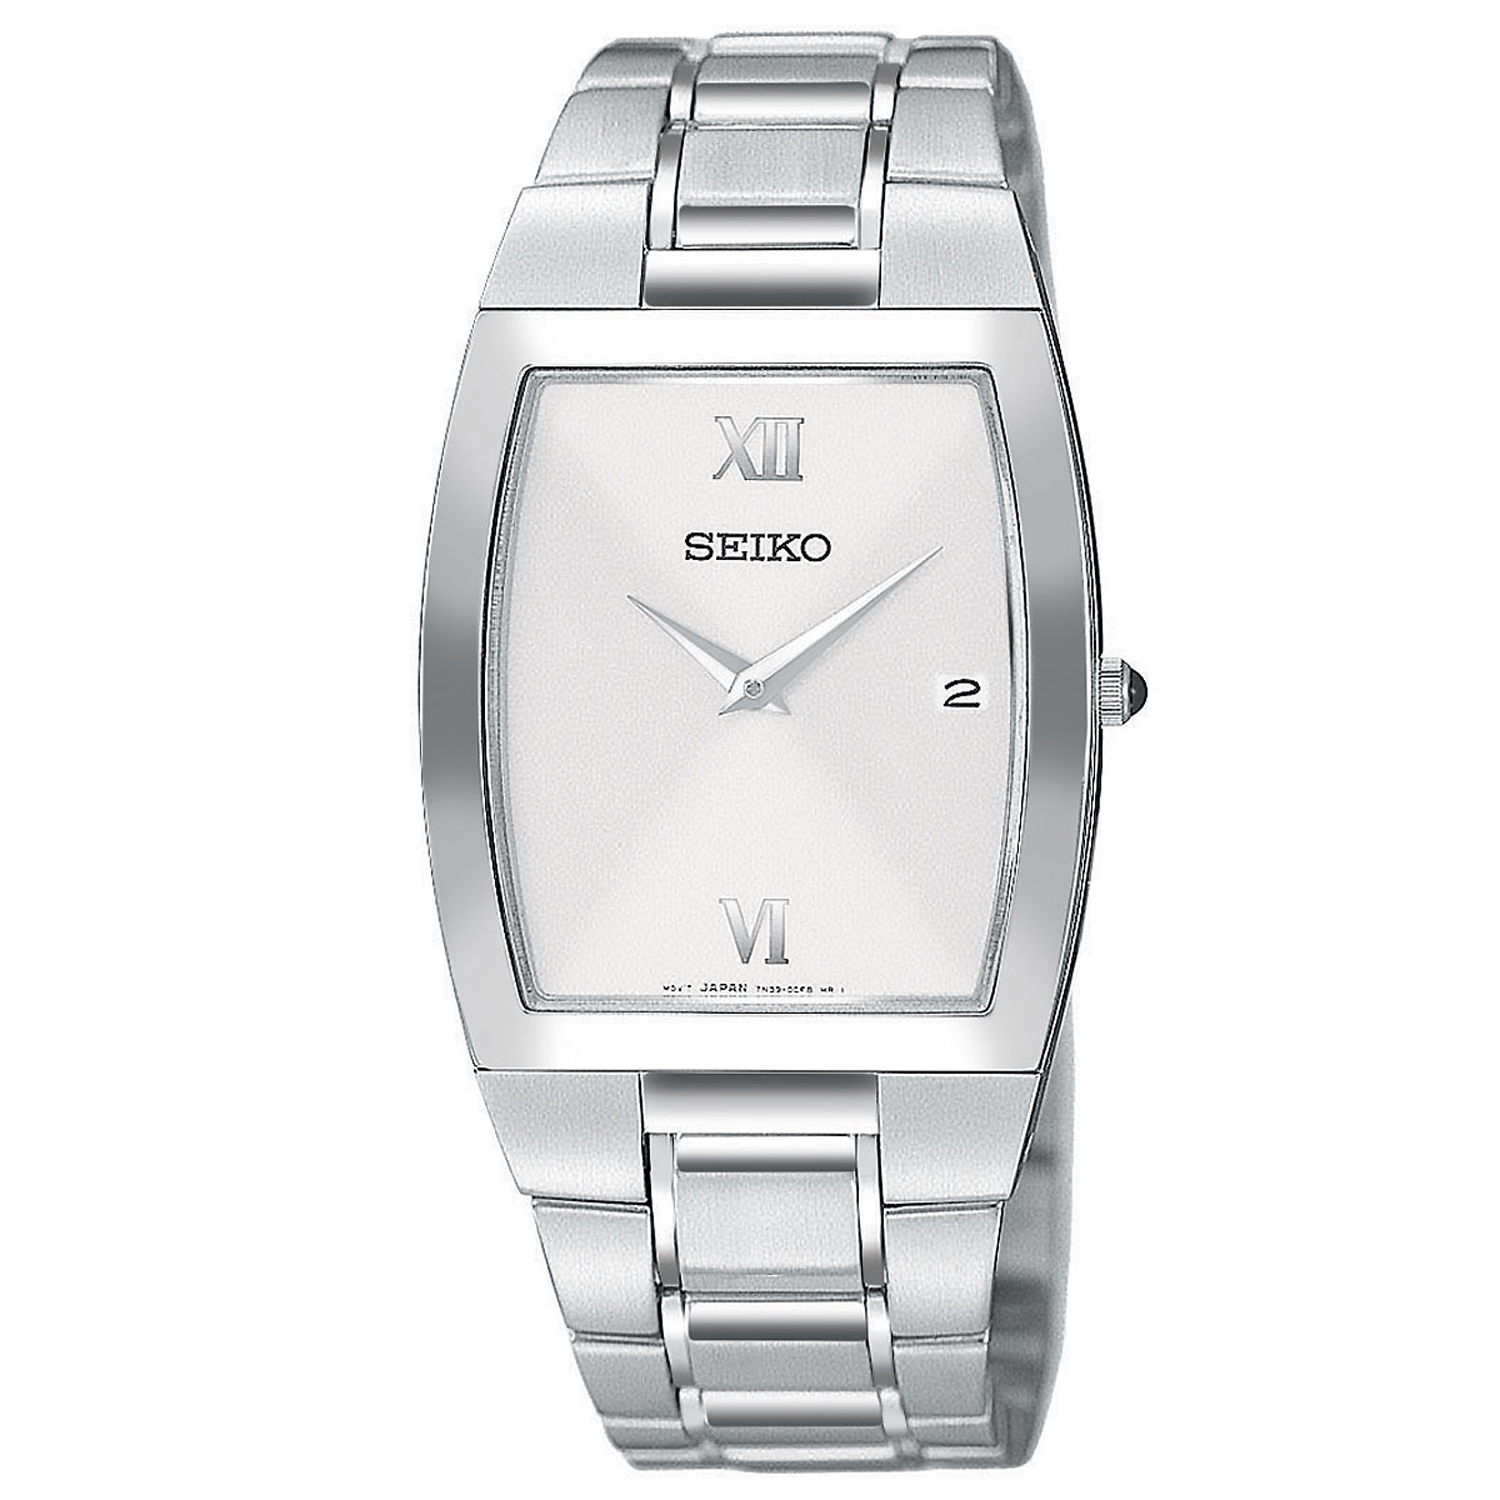 Seiko SKP323 Seiko Men's Tonneau Shaped Silver Sunburst Dial